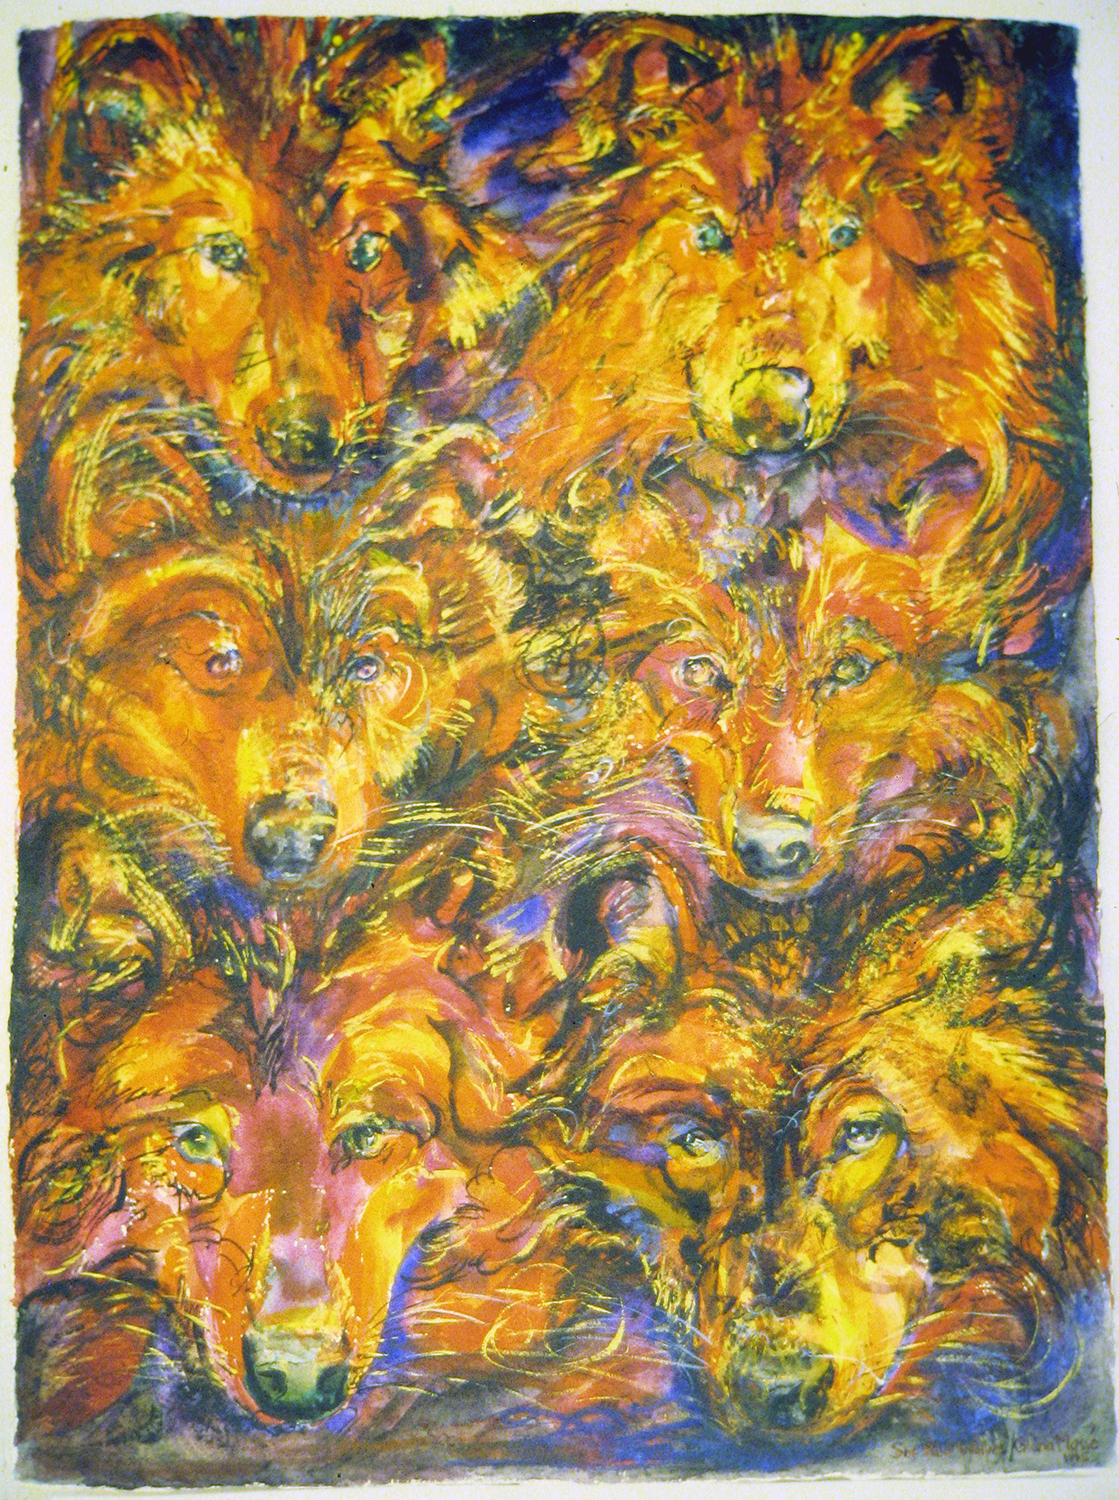 red wolves 1993 watercolour 30x22